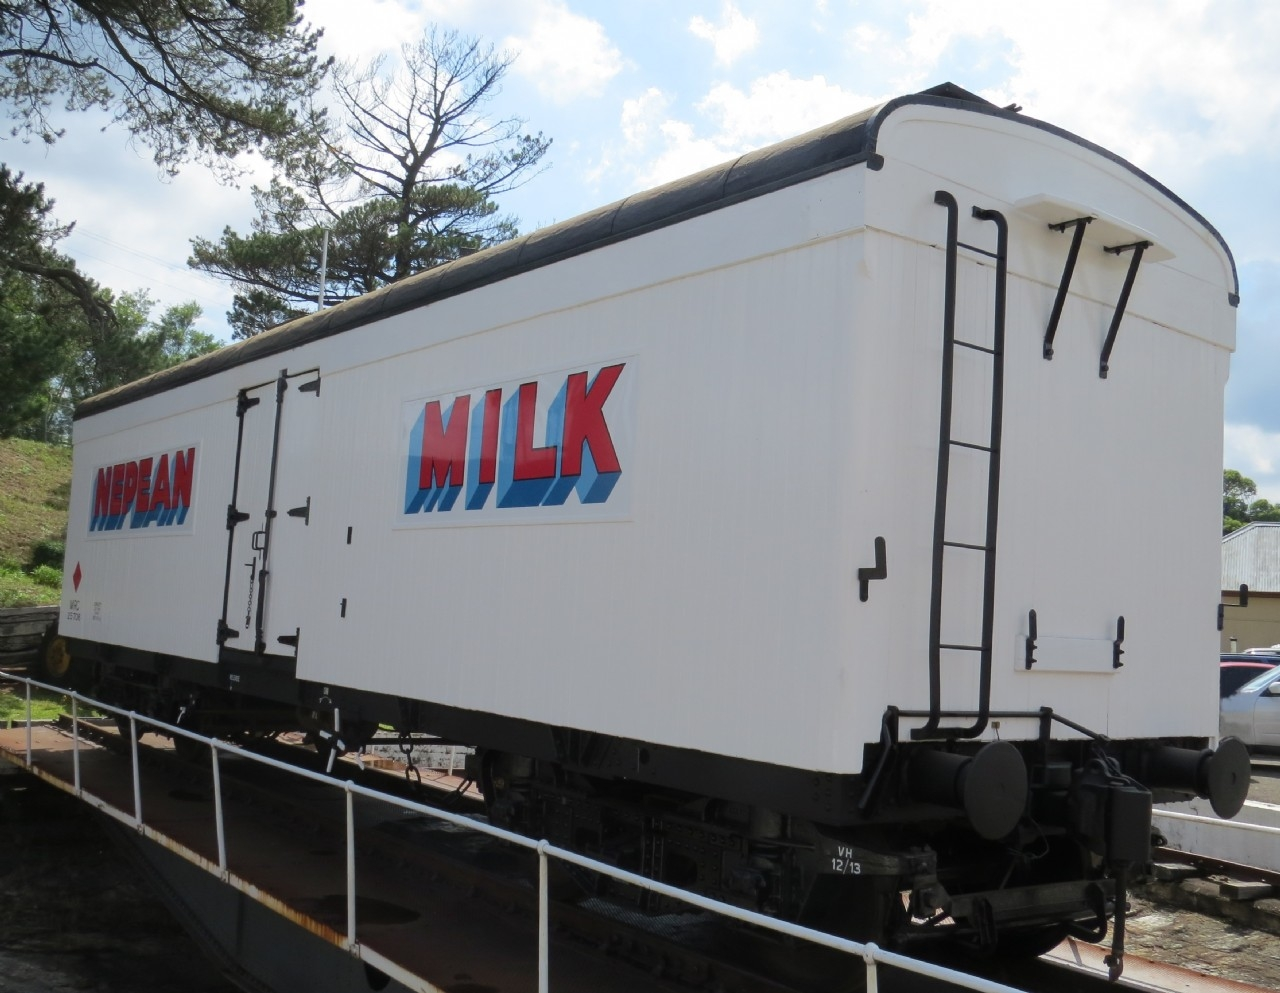 MRC Milk Van - Photo Courtesy of Valley Heights Locomotive Depot Heritage Museum